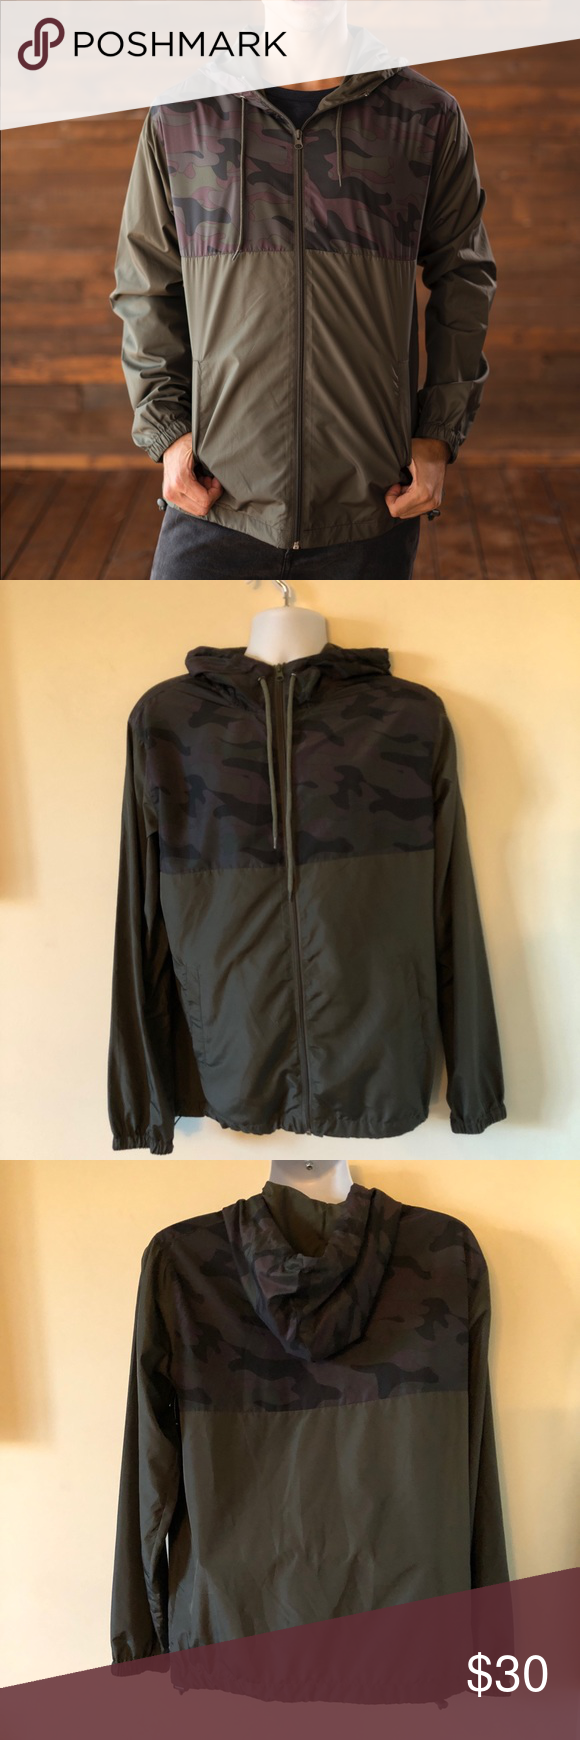 green Men's Clothing Sale   Urban Outfitters